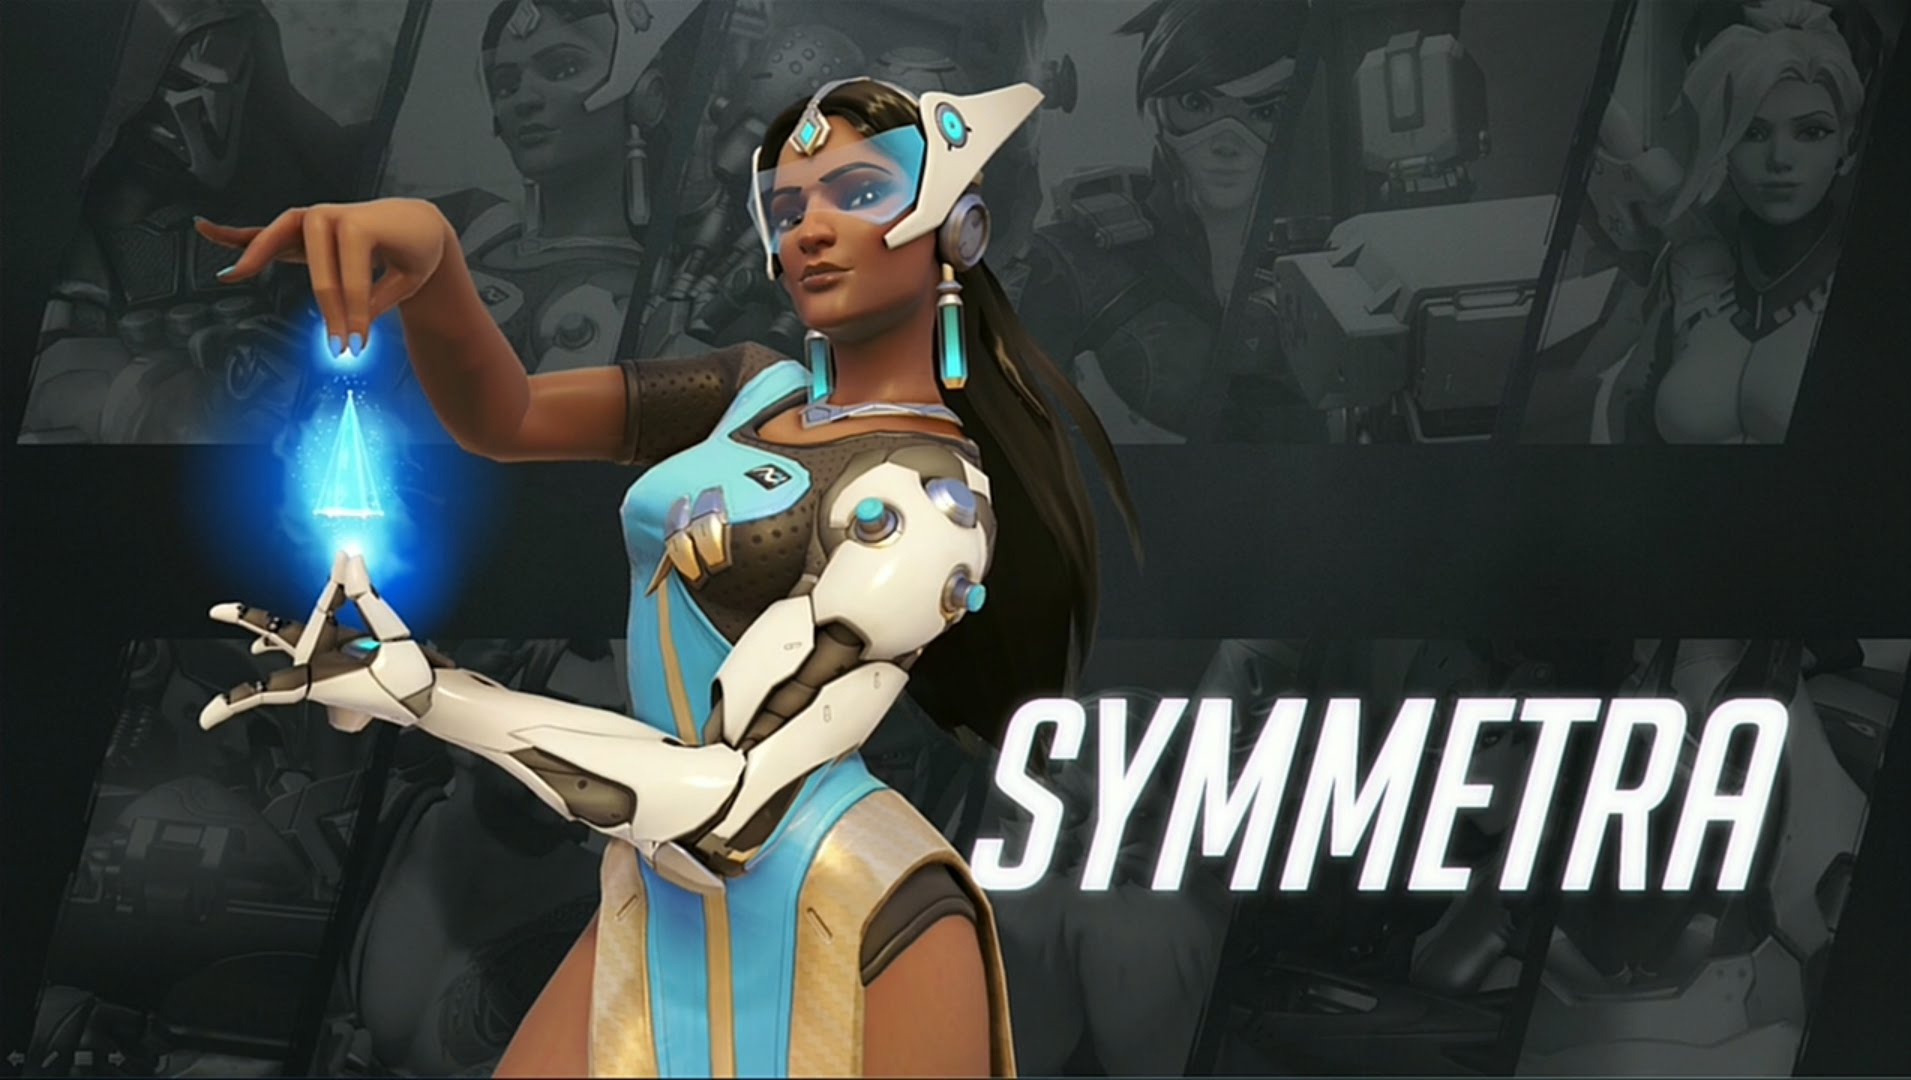 Overwatch : Symmetra Wallpapers